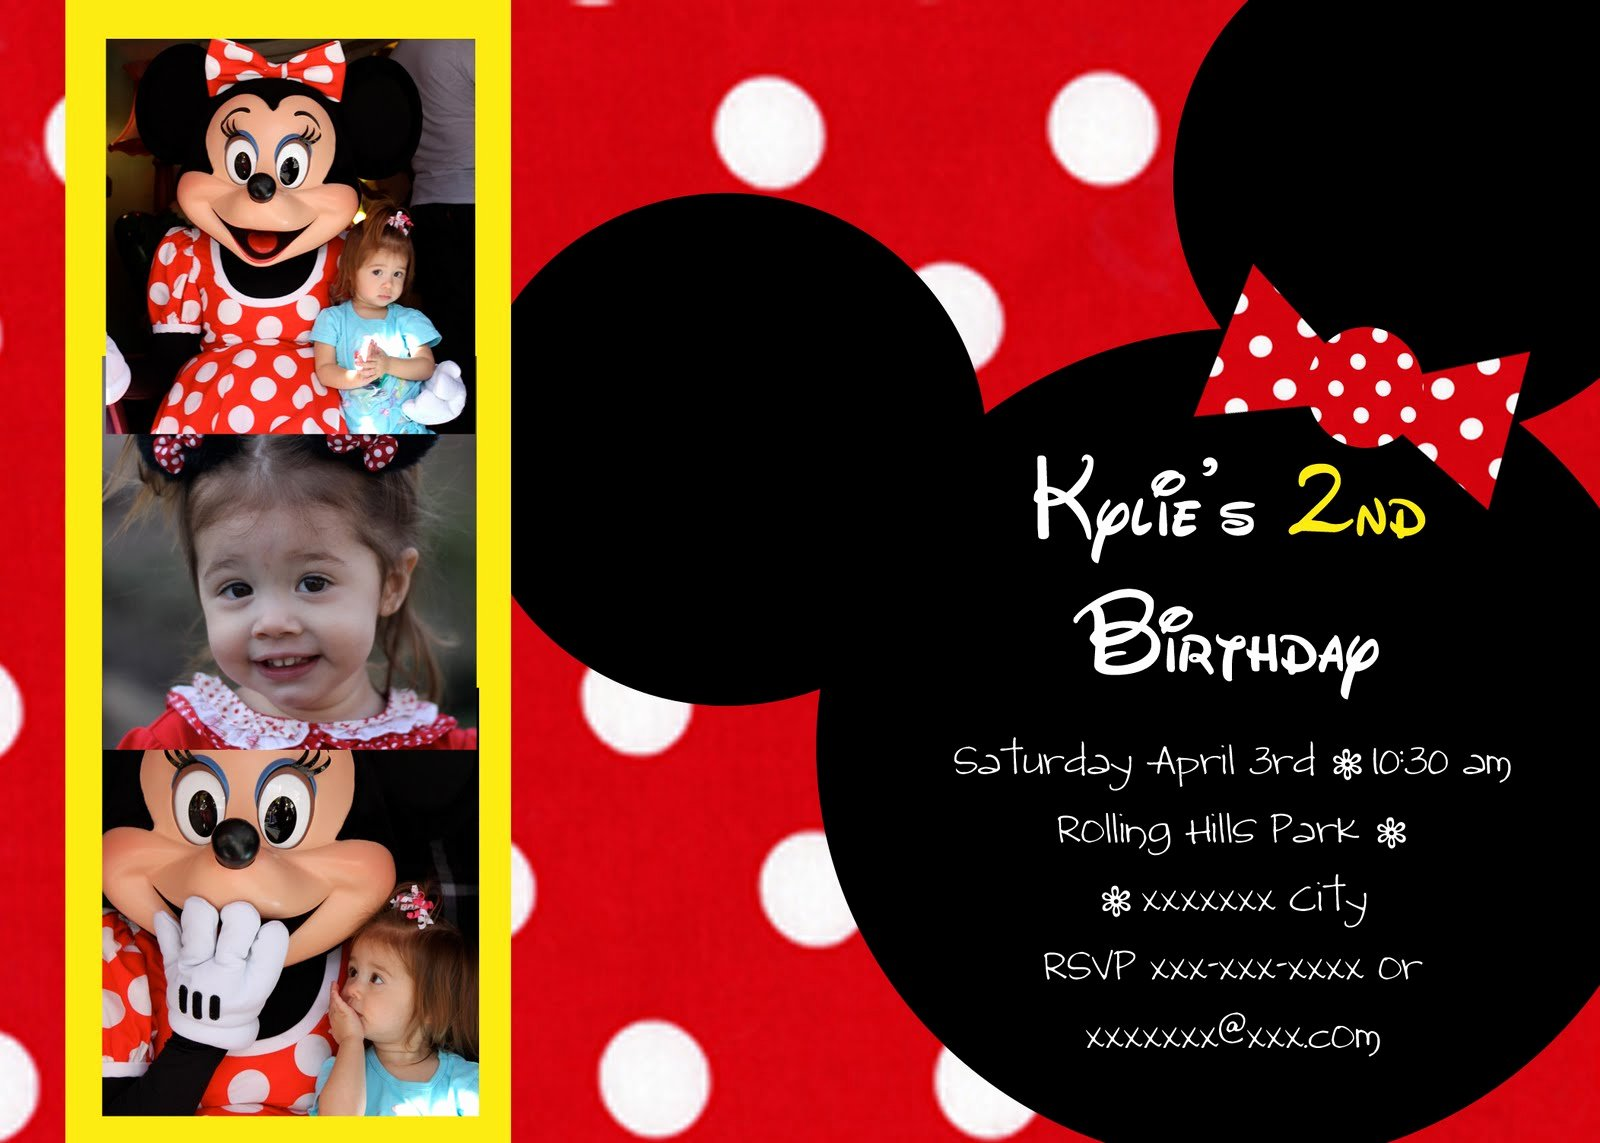 Minnie Mouse Invitation Maker New Janessa Castleberry Minnie Mouse Birthday Invitations